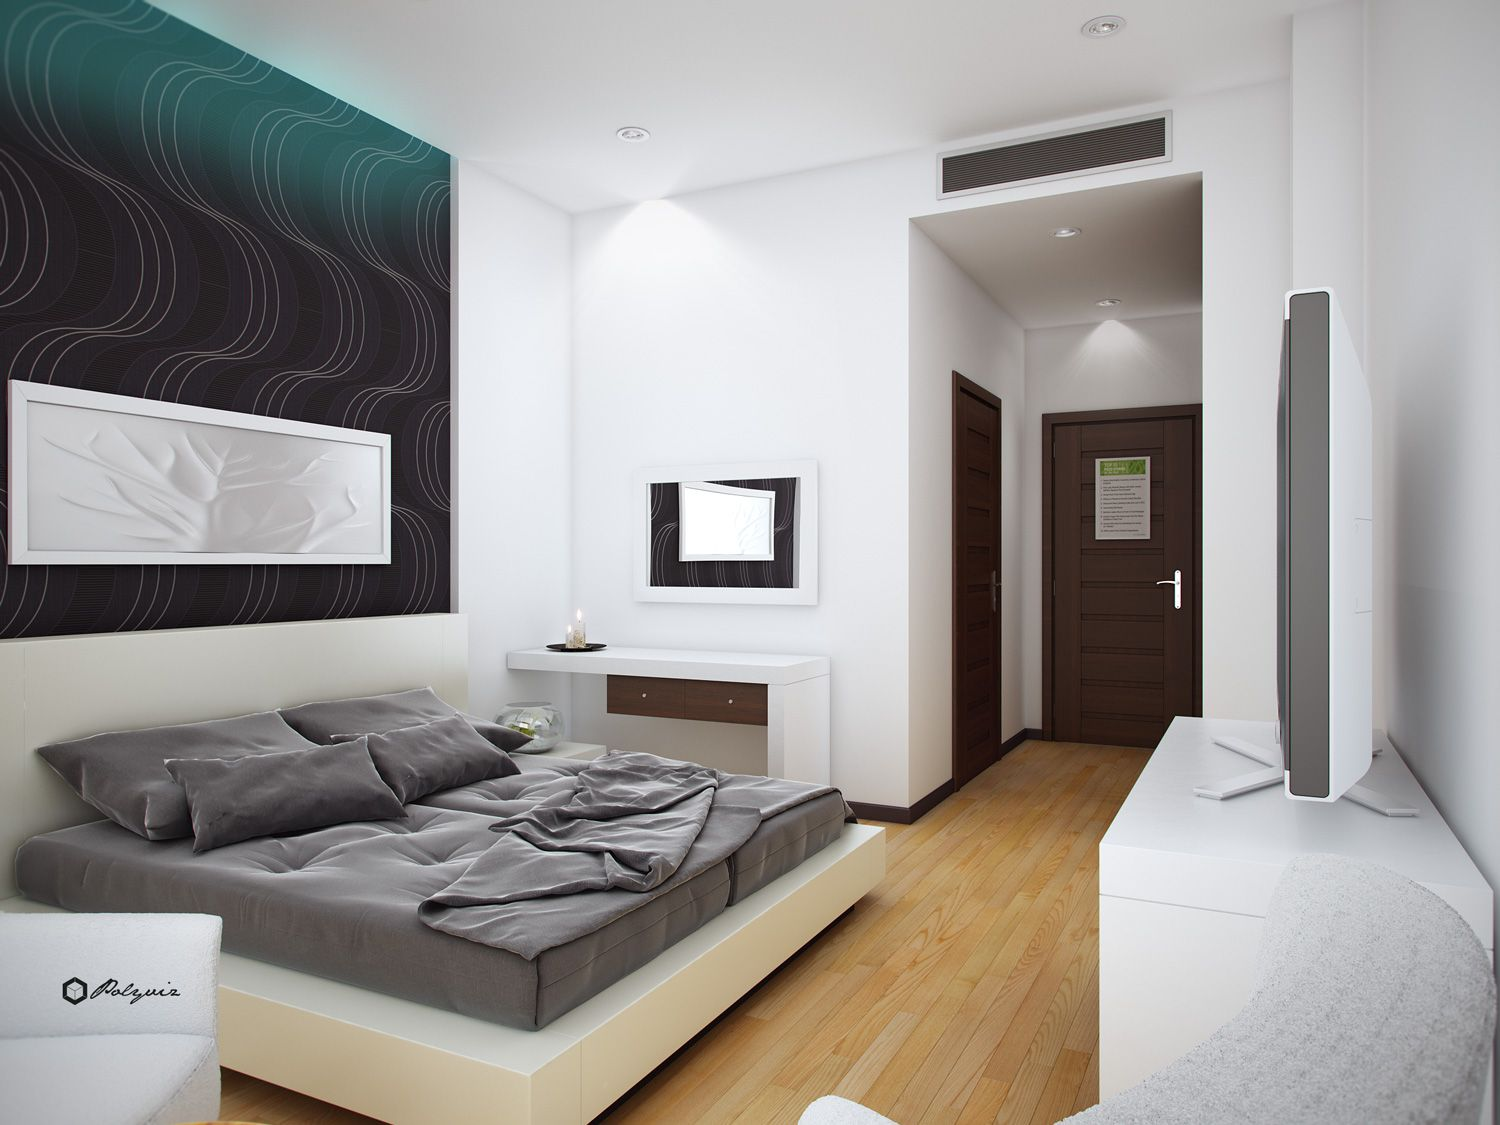 Modern hotel room design google search room design for Hotel suite design